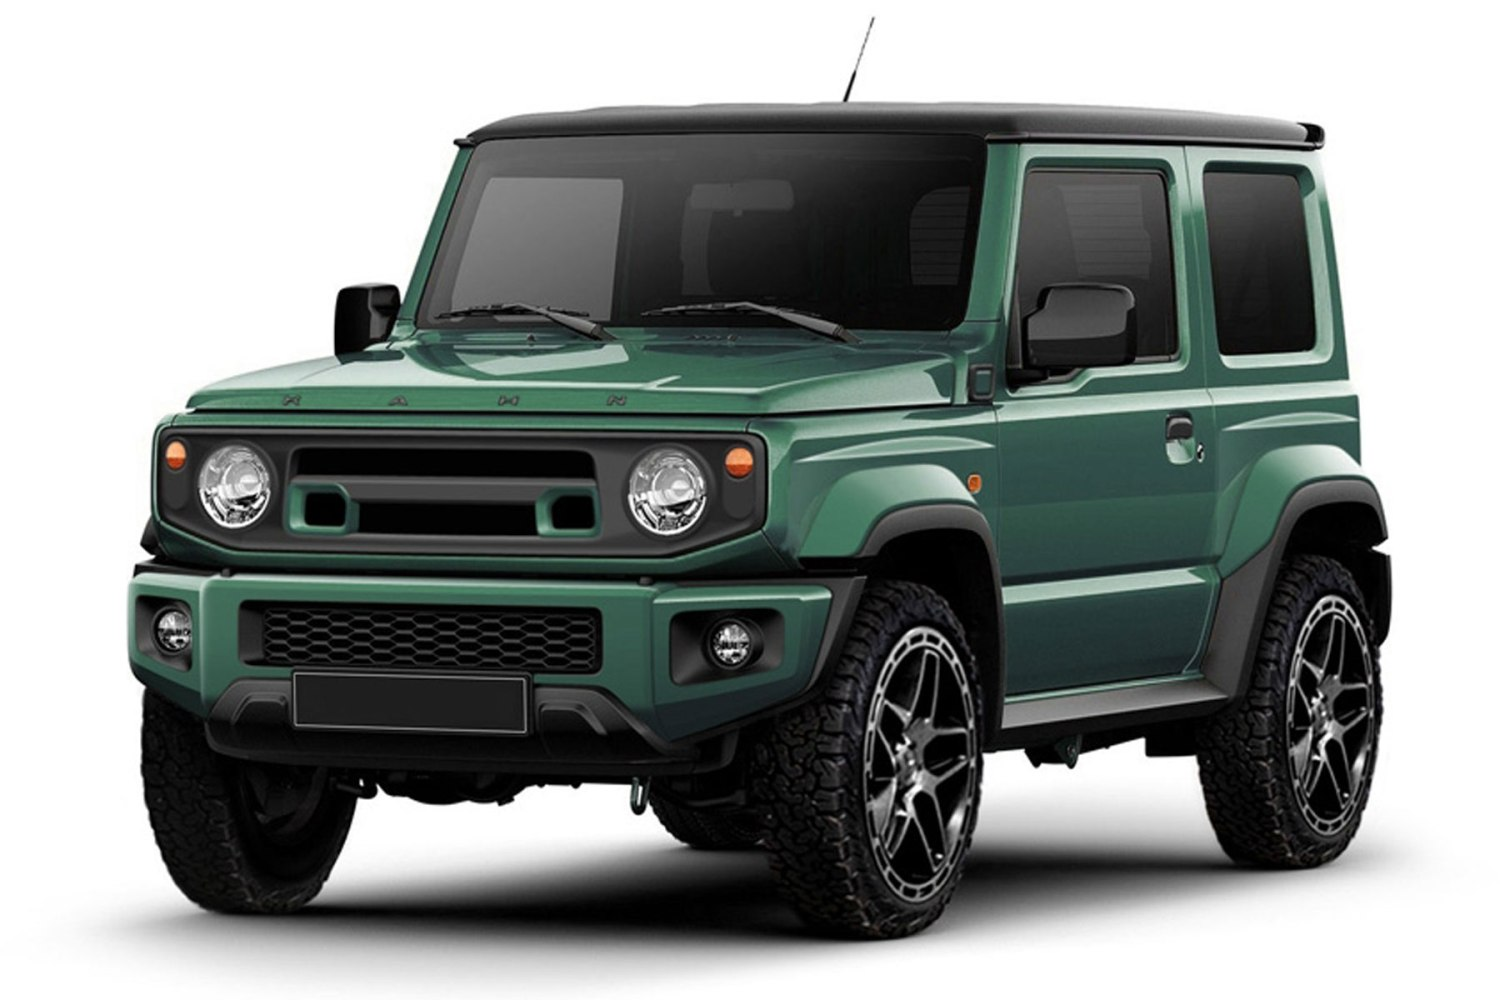 2019 Suzuki Jimny: News, Design, Release >> Kahn Builds A Custom Suzuki Jimny For The King S Road